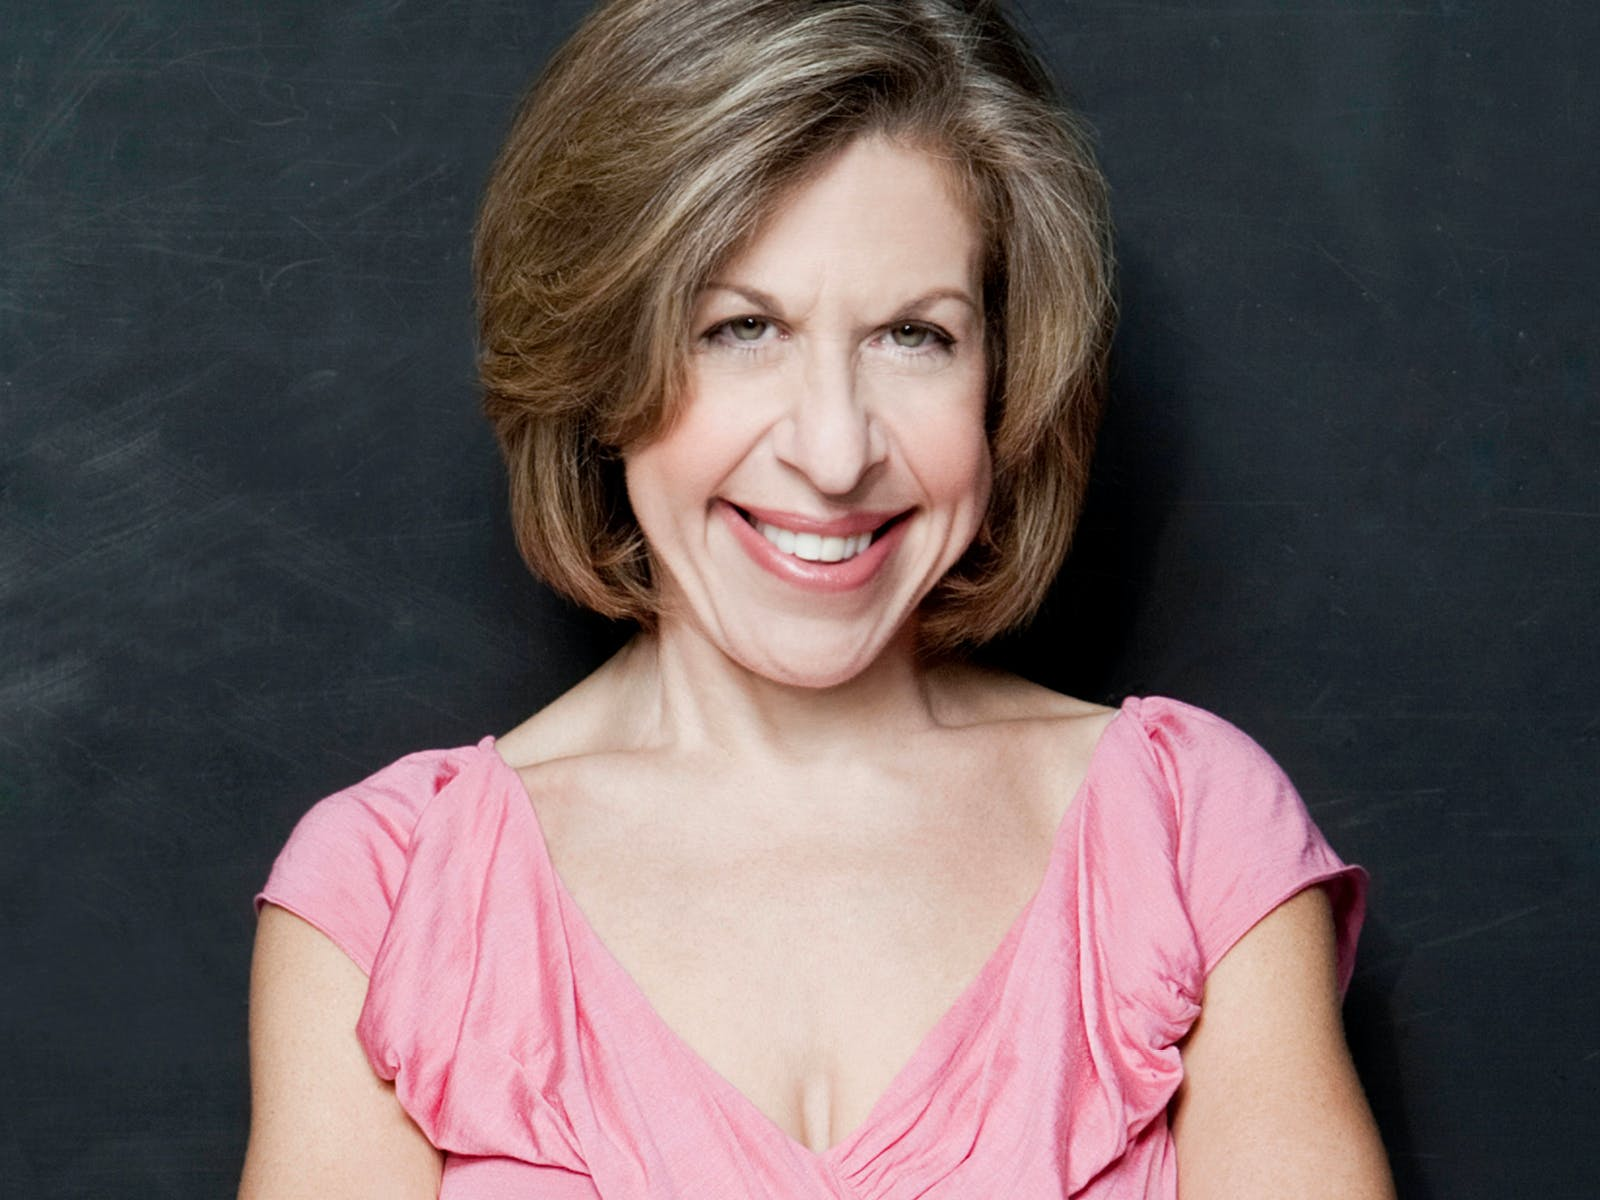 Discussion on this topic: Sandra Prosper, jackie-hoffman/